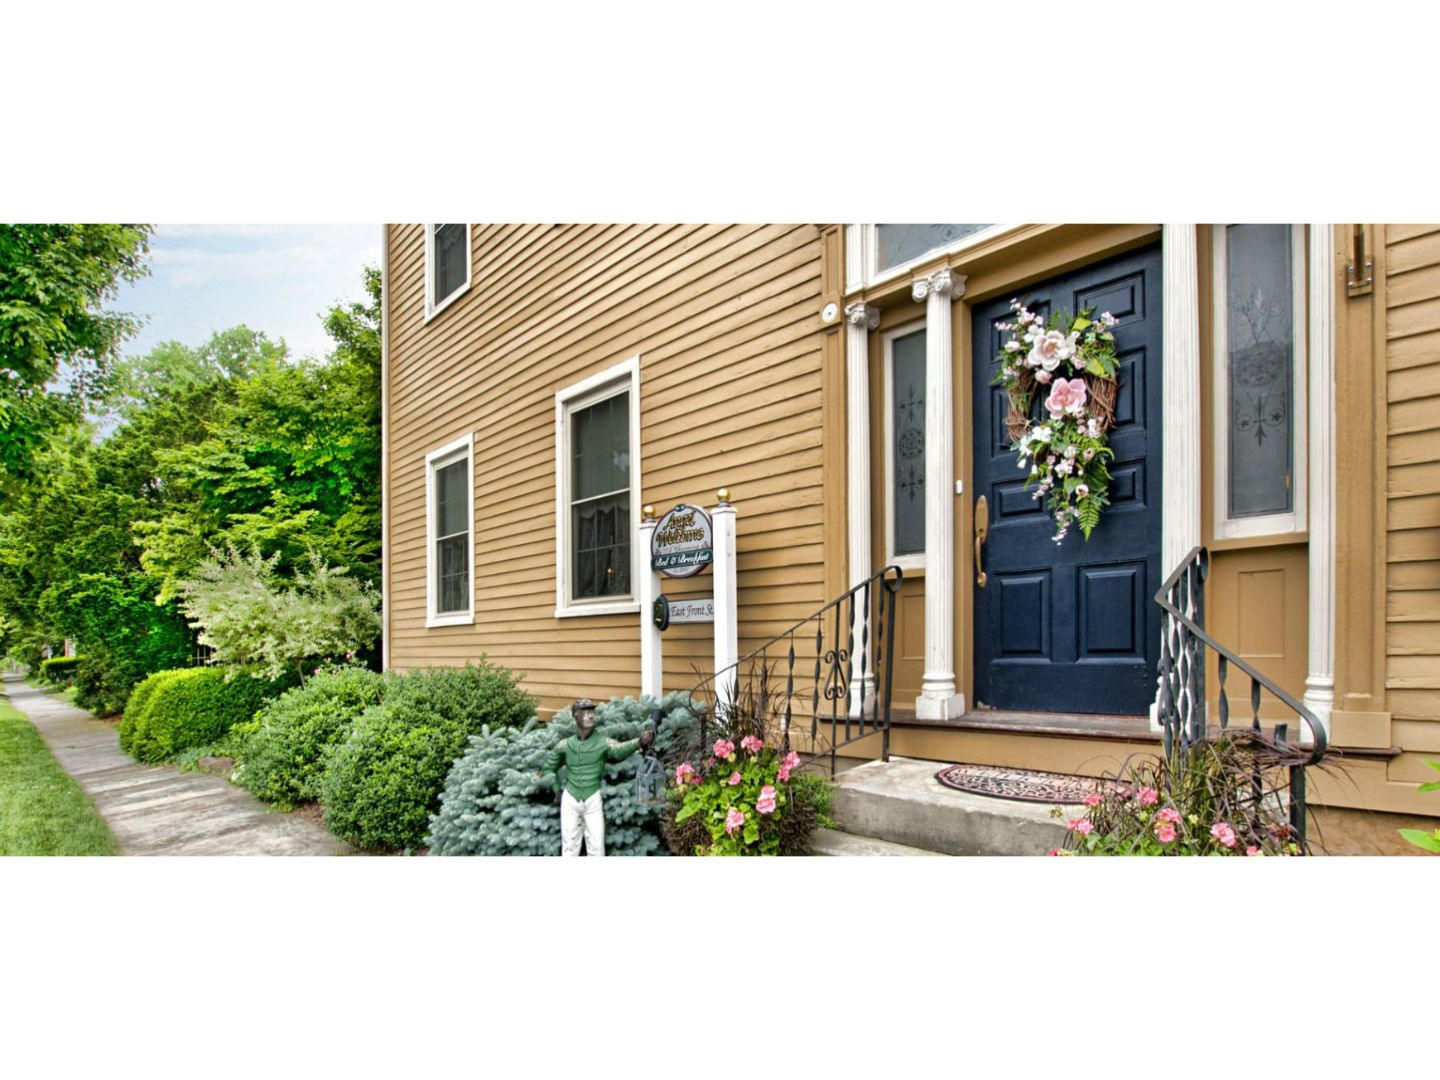 A house with bushes in front of a brick building at Angel Welcome - A Charming Bed & Breakfast.